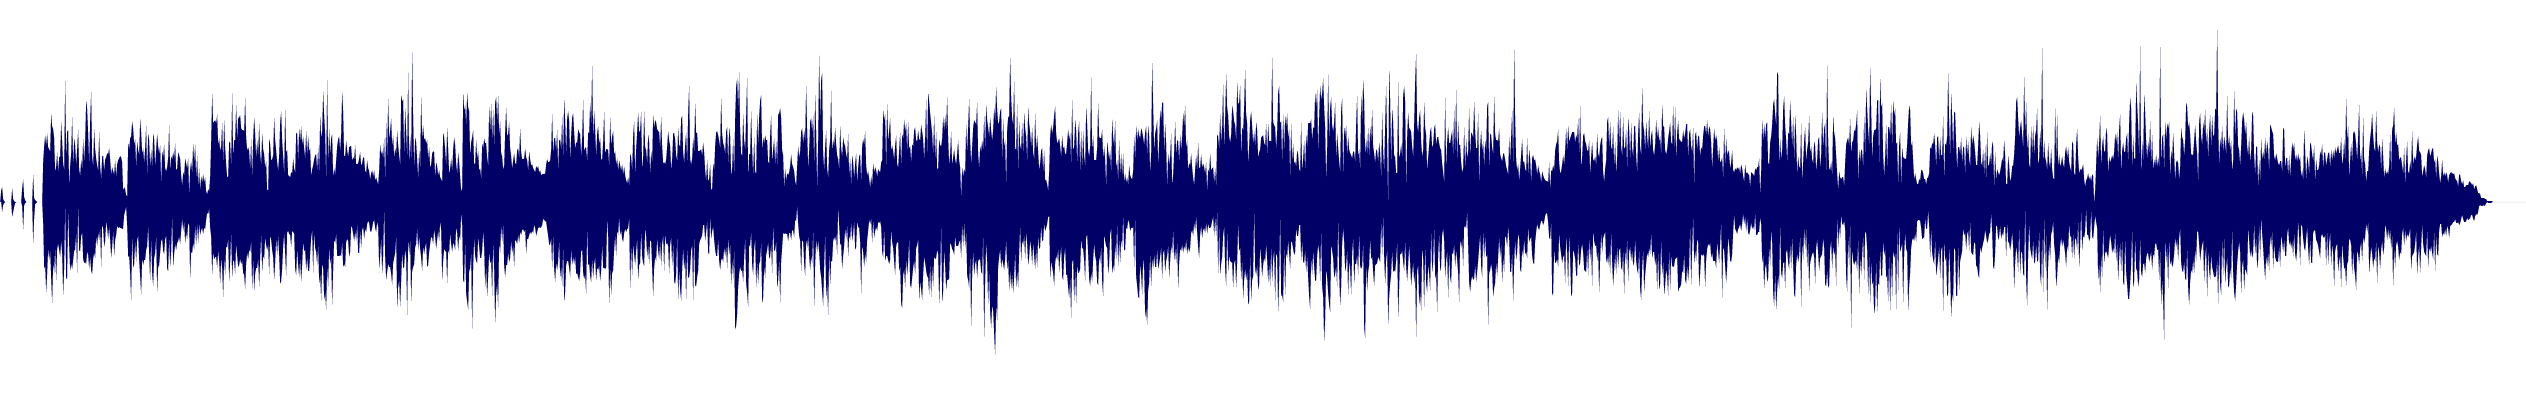 waveform of track #100733